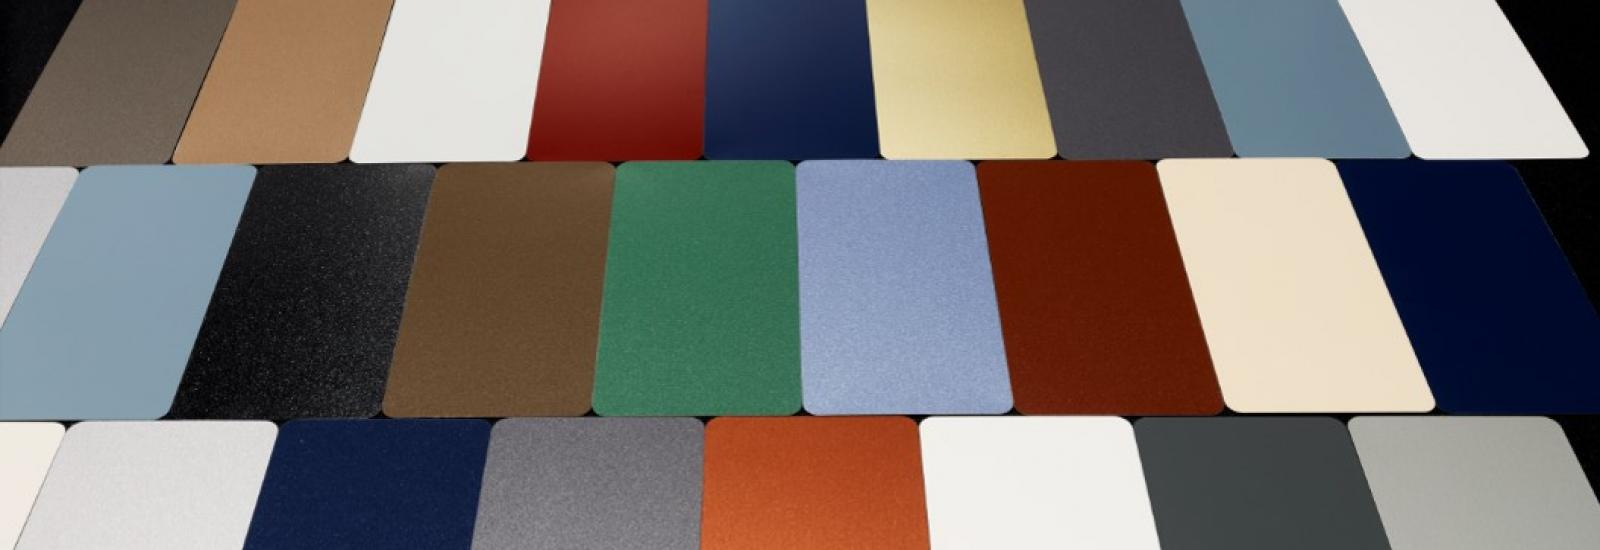 Tata Steel launches new generation of Colorcoat PRISMA®